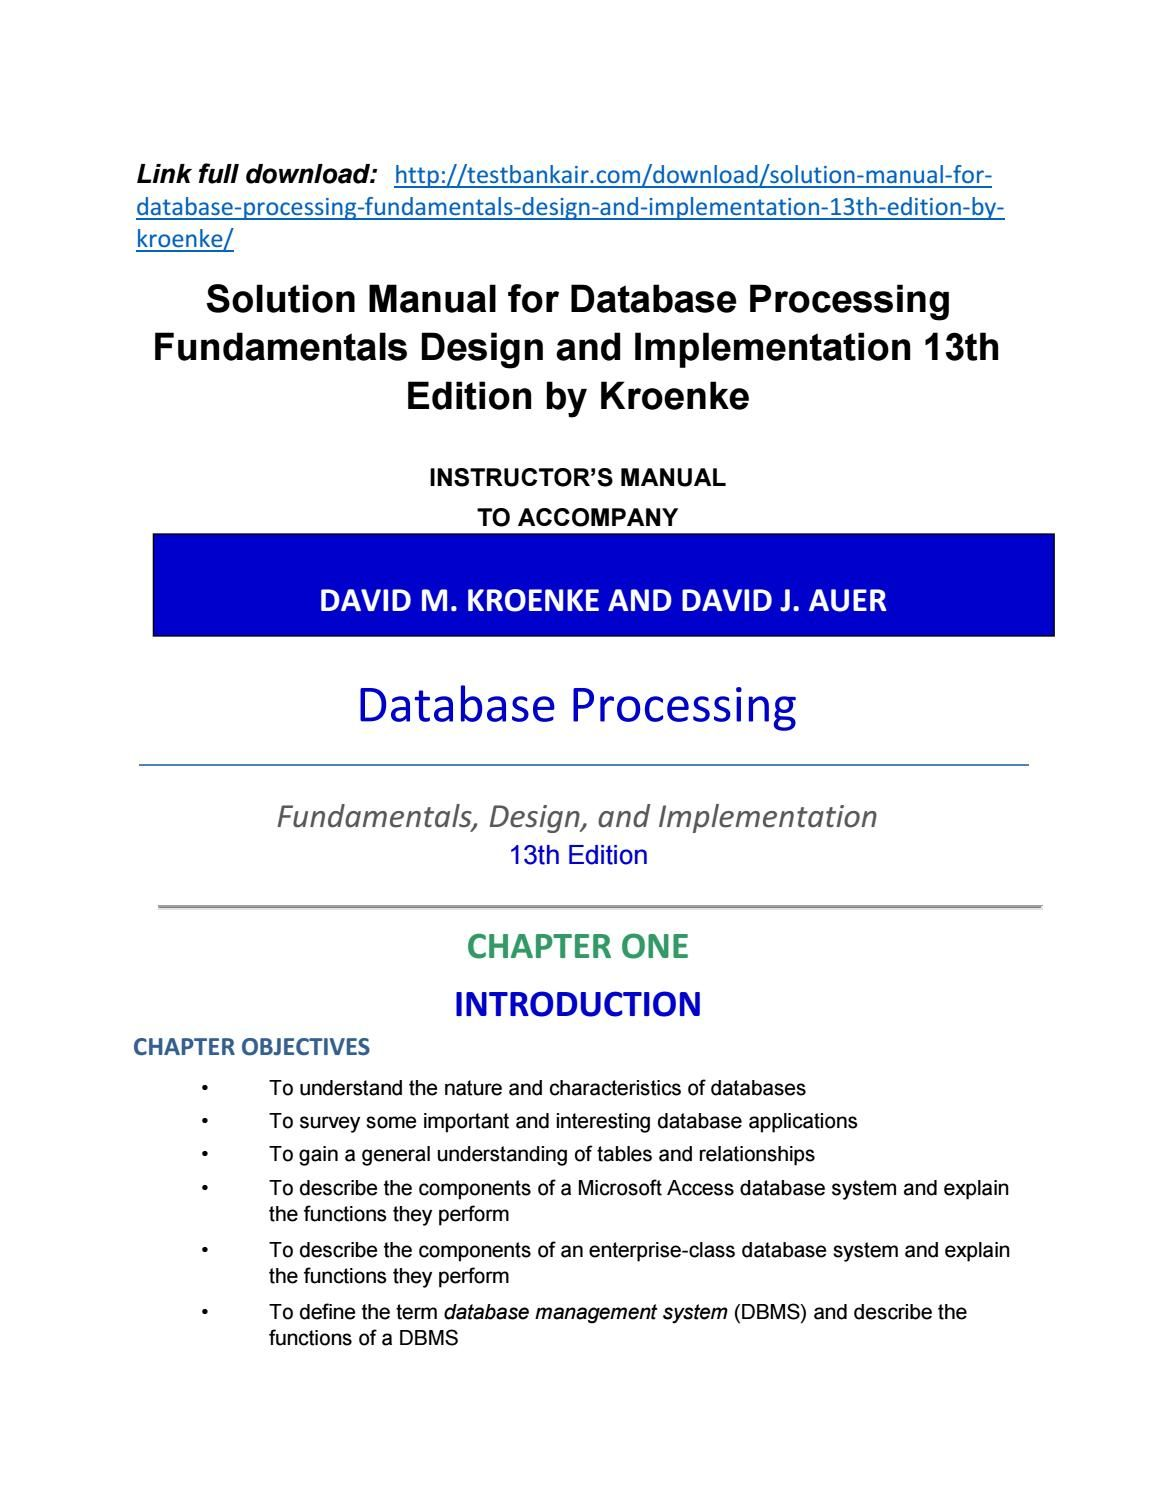 Download solution manual for database processing fundamentals design and  implementation 13th edition